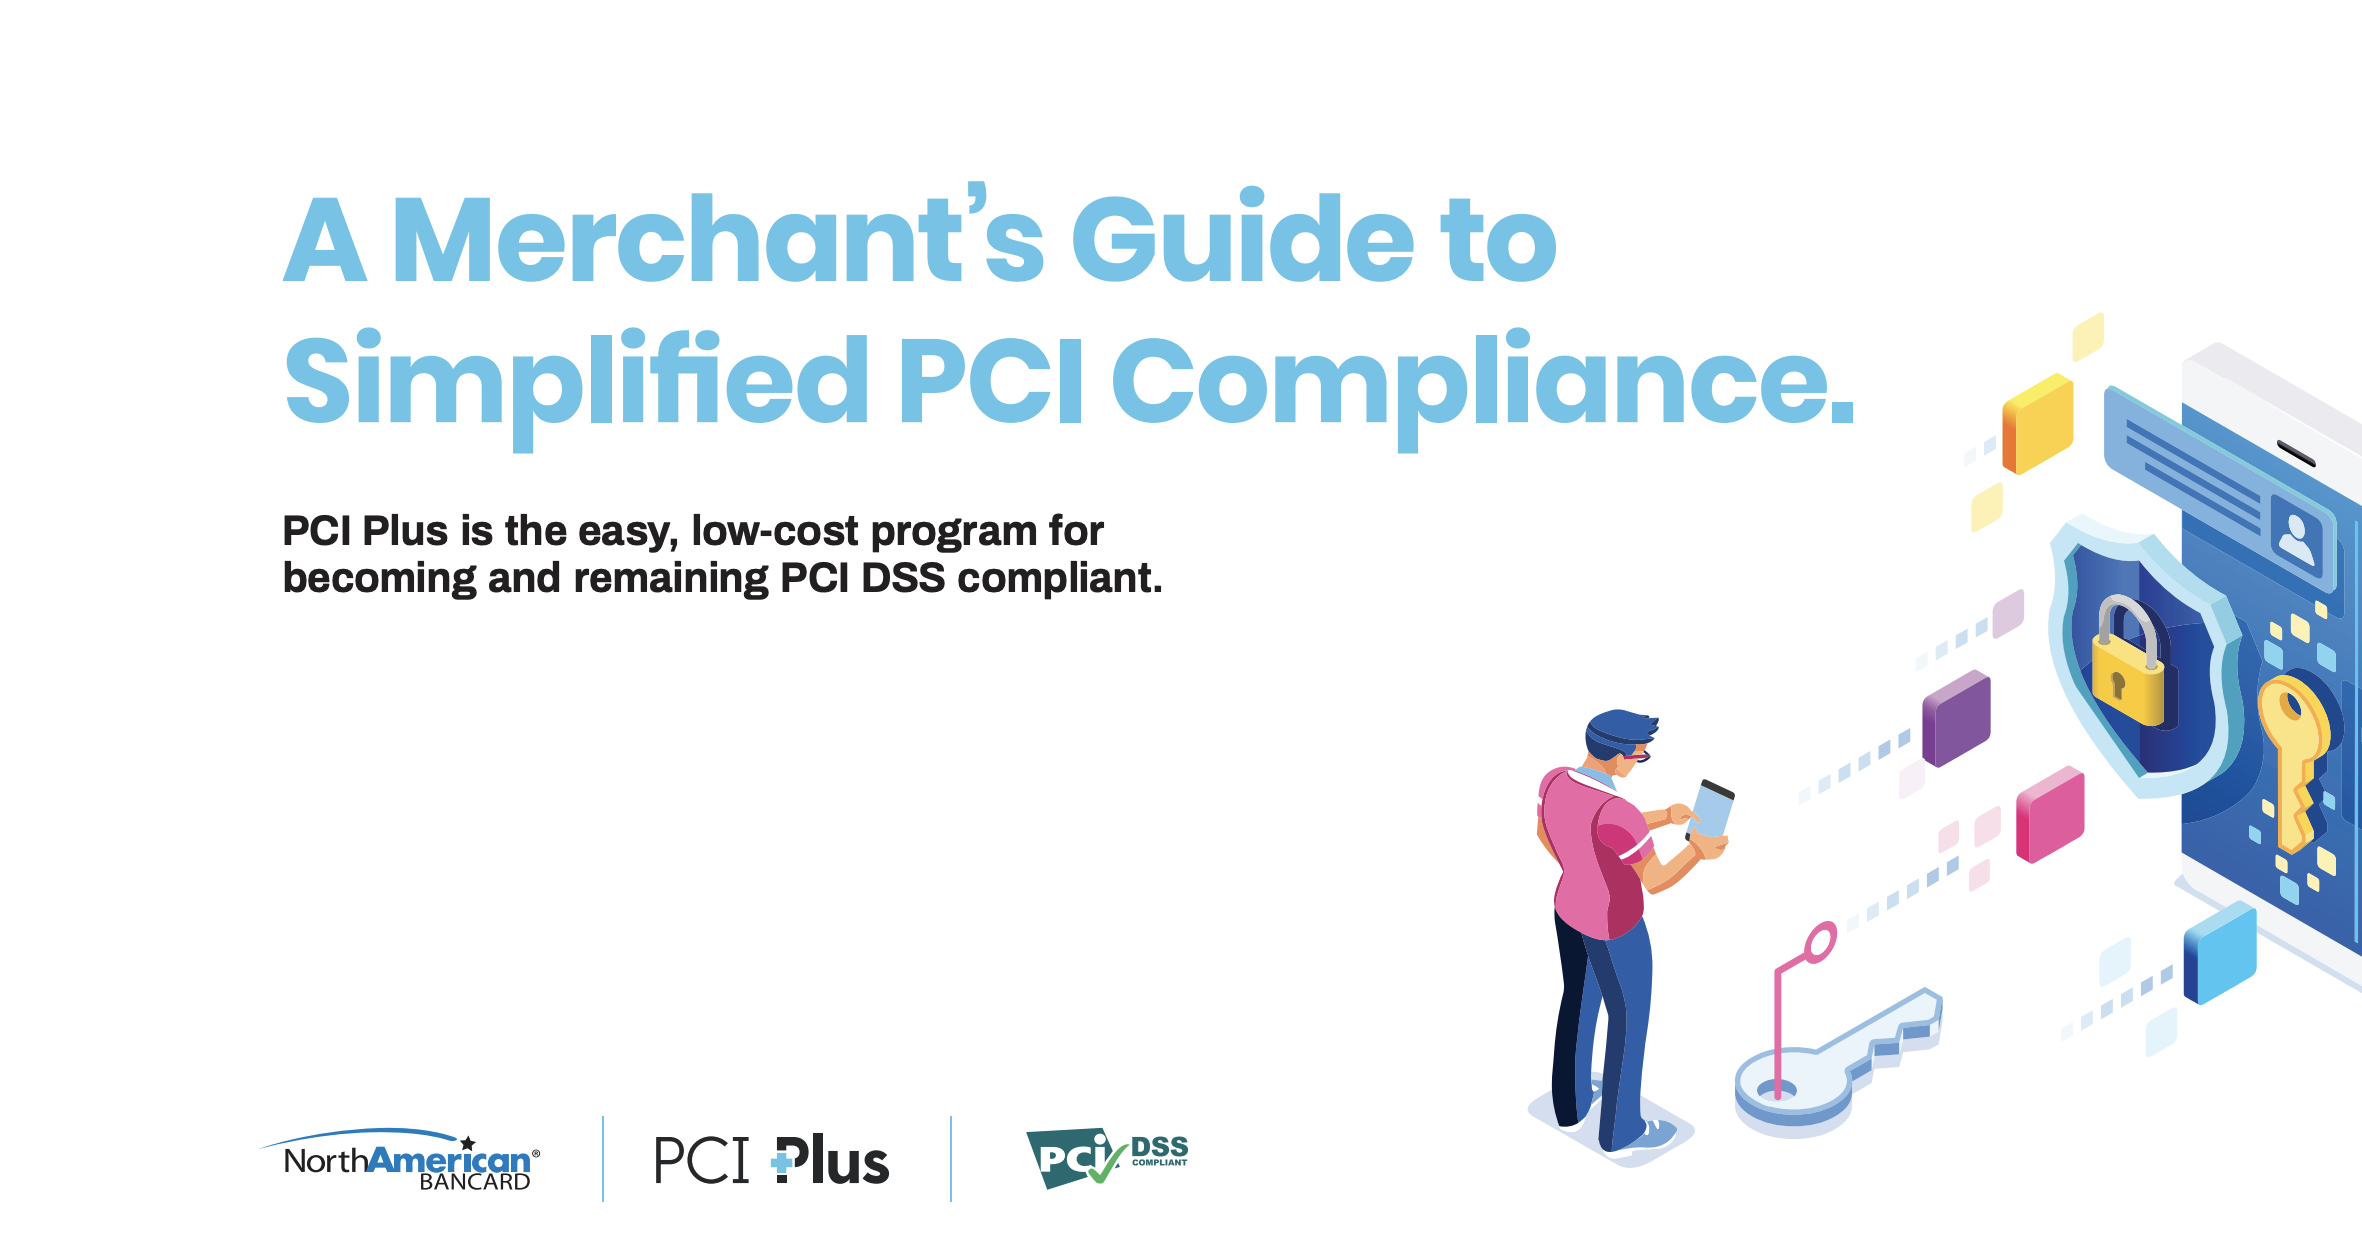 PCI Plus has arrived!